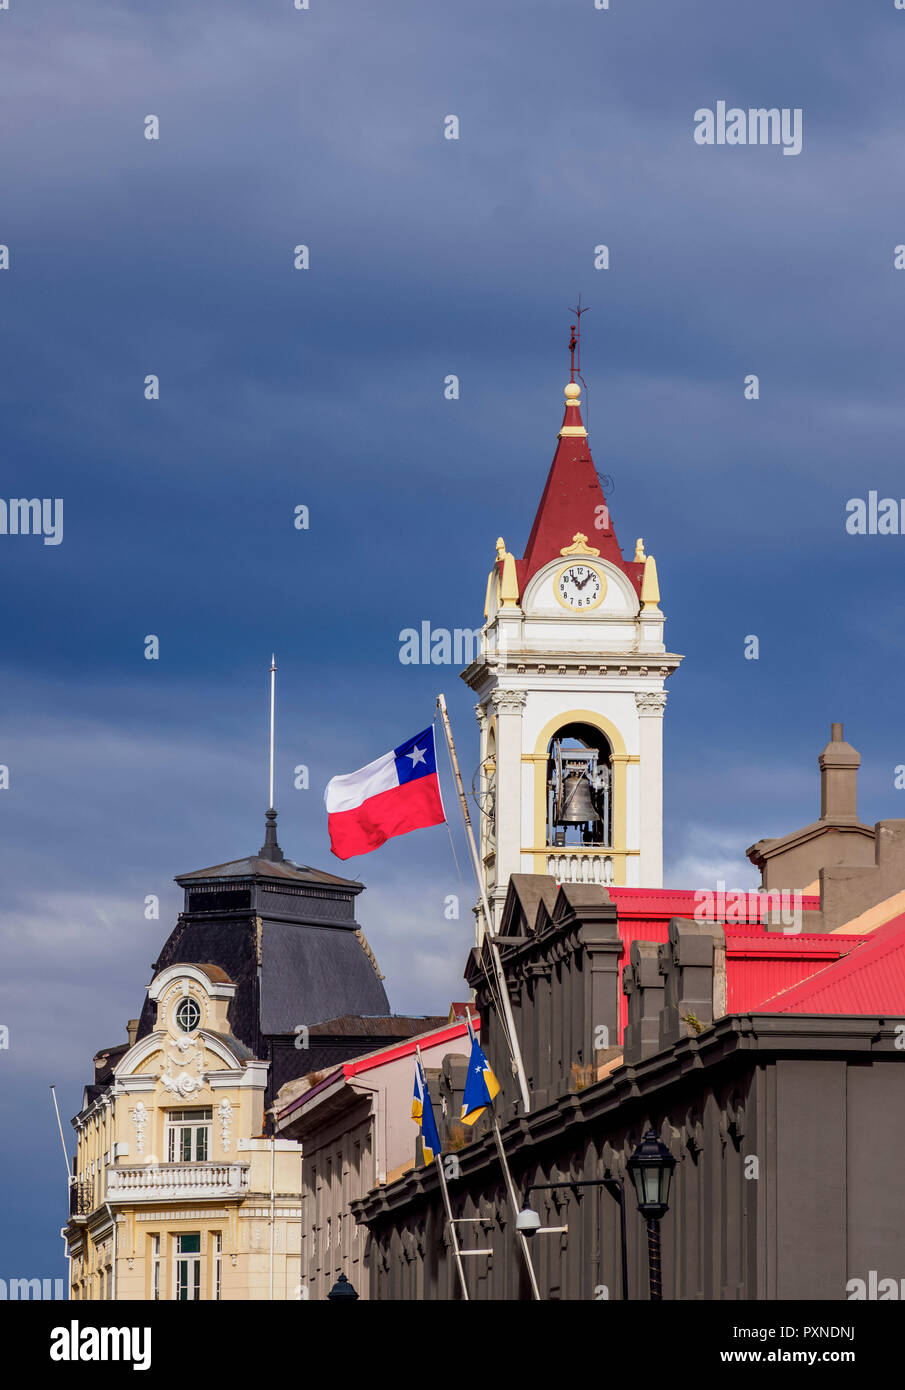 Local Government Office and Cathedral Tower, Punta Arenas, Magallanes Province, Patagonia, Chile - Stock Image